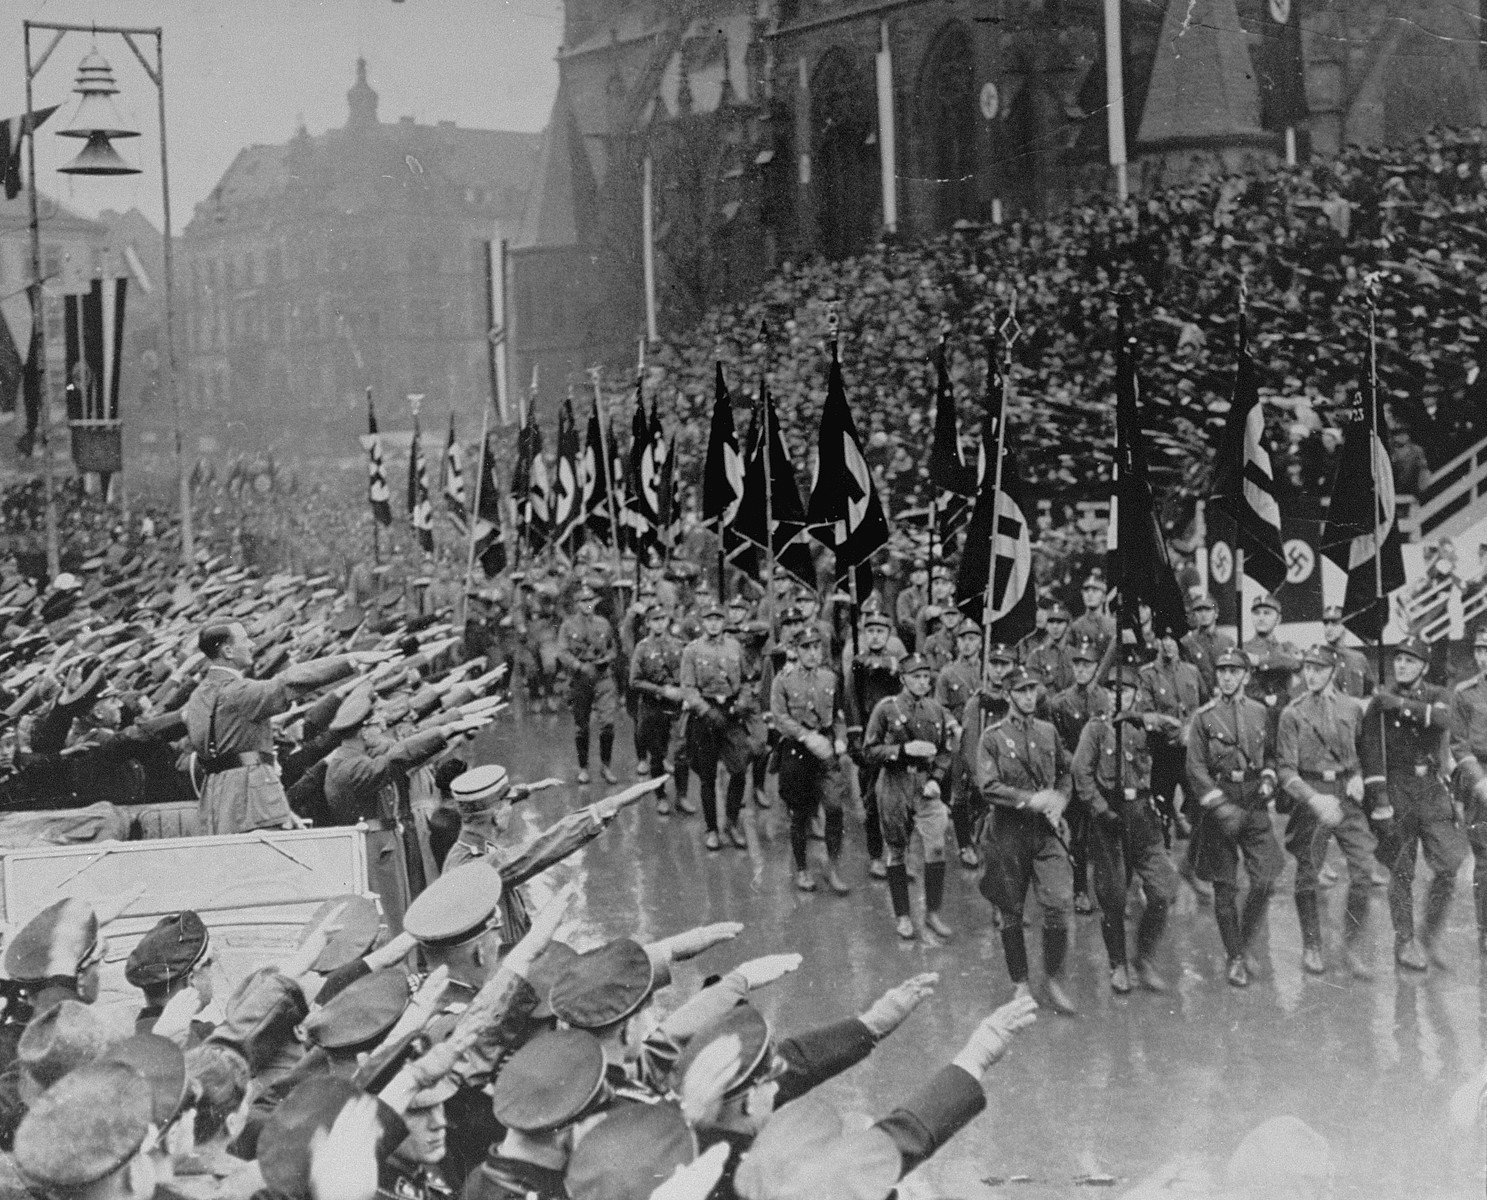 Hitler reviews SA troops during a parade in Saarbruecken.    Saarlanders gave Hitler an enthusiastic welcome when he made his dramatic entry into the Saar for its official transfer from the League of Nations to Germany.